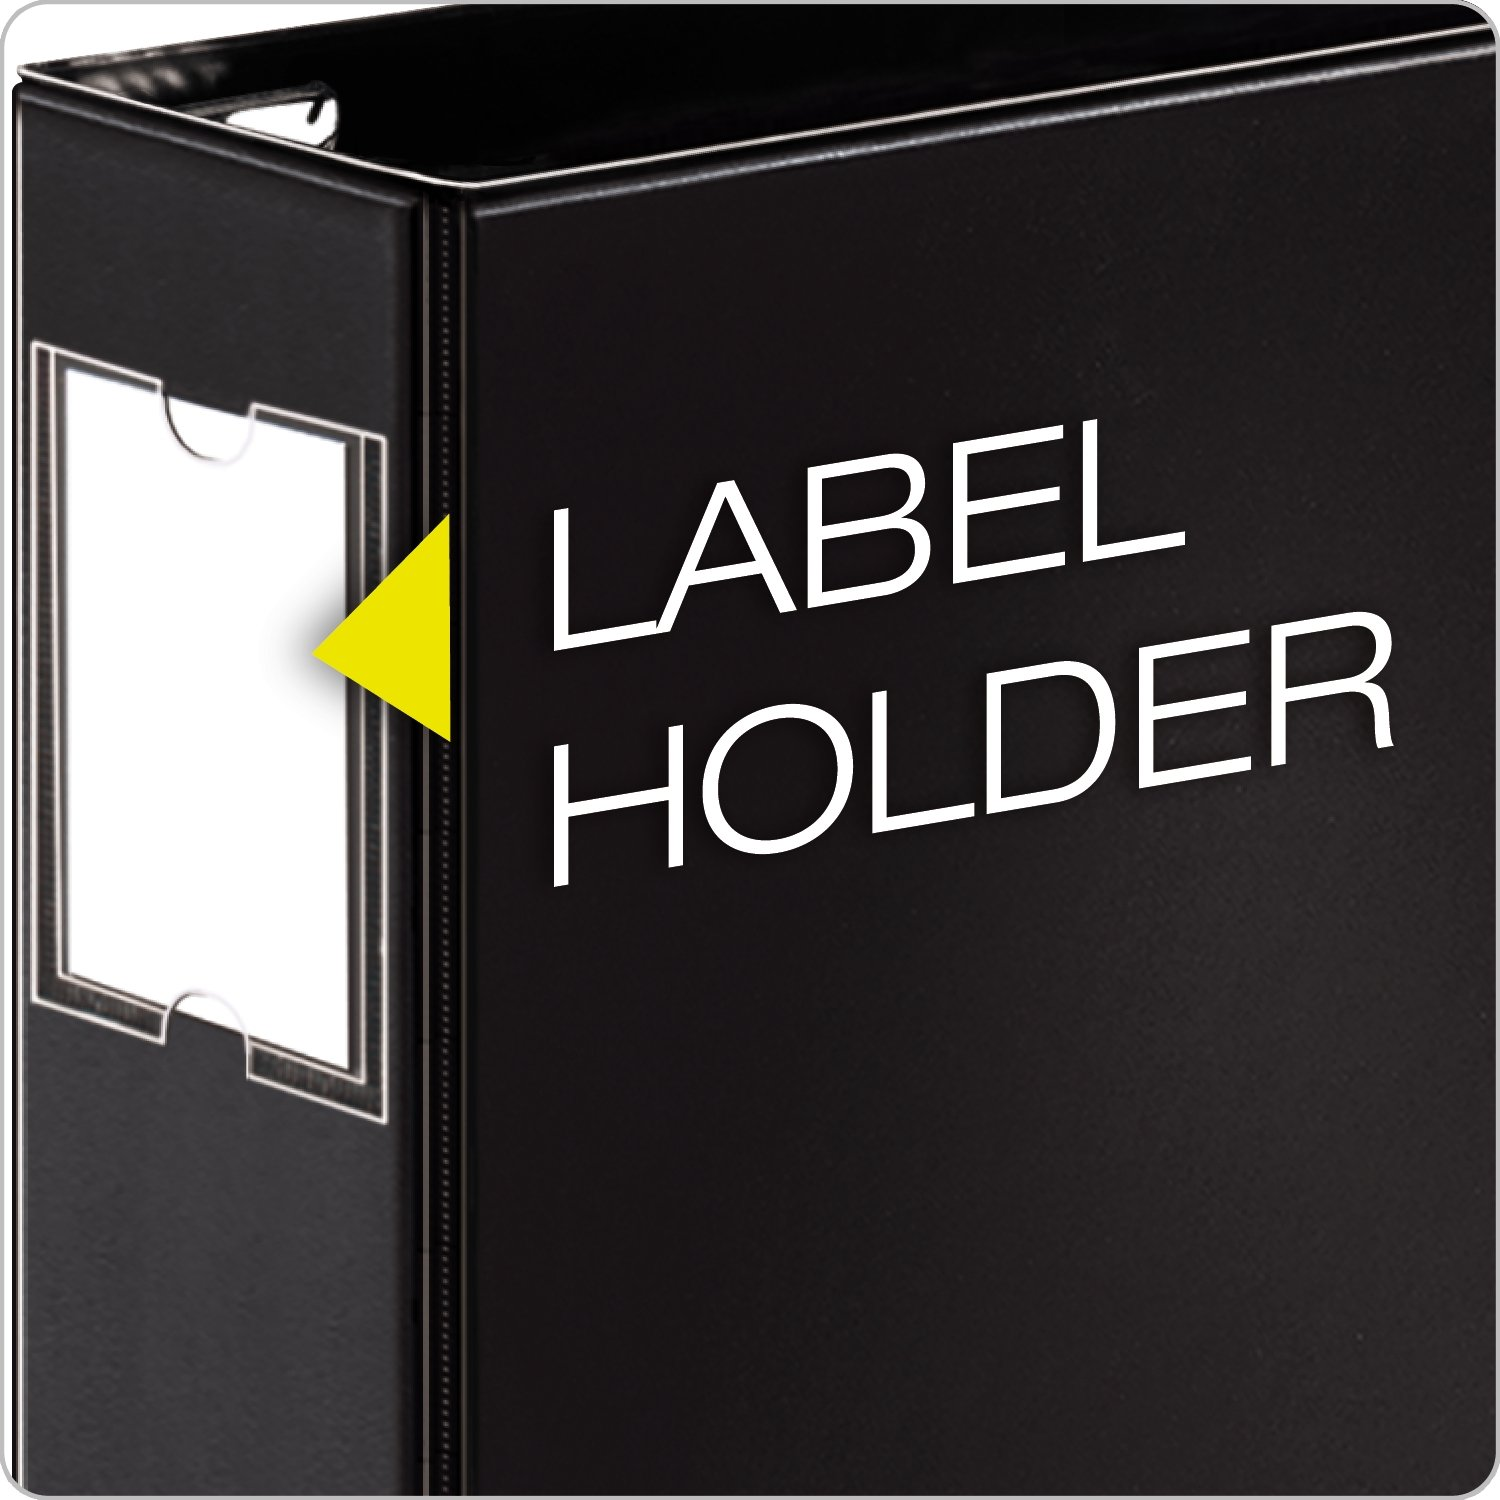 Cardinal by TOPS Products EasyOpen Tabloid 11 x 17 Inch Locking Slant D-Ring Binder with Label Holder CRD12122 1.5 Inch Capacity Black